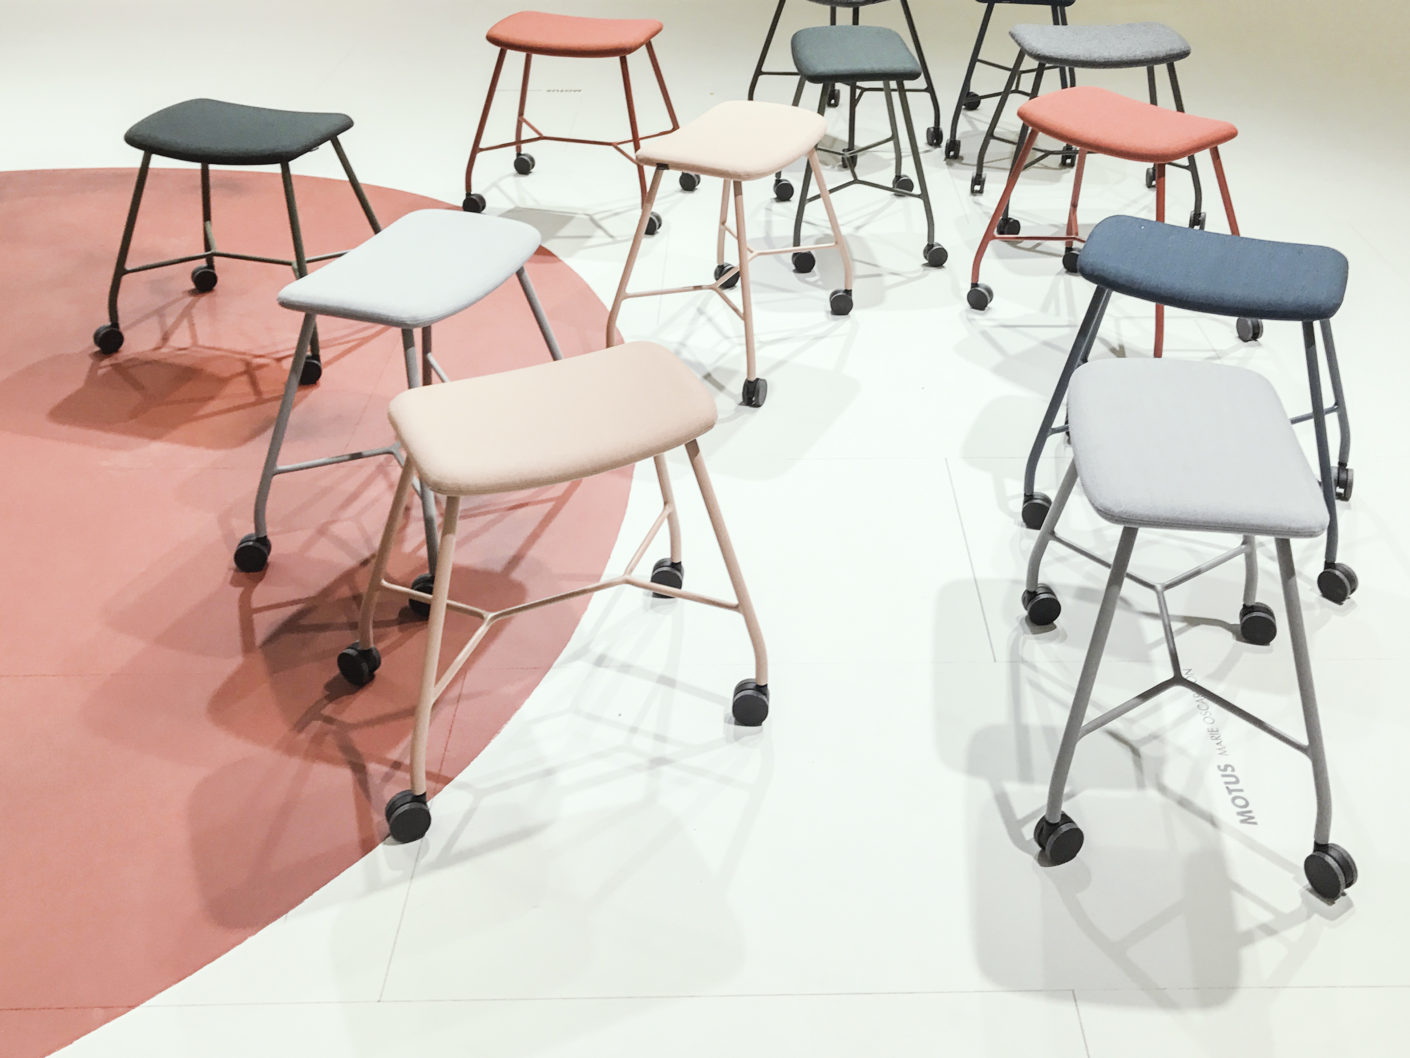 Stockholm Furniture and Light Fair 2018, Materia, Motus, Stylepark